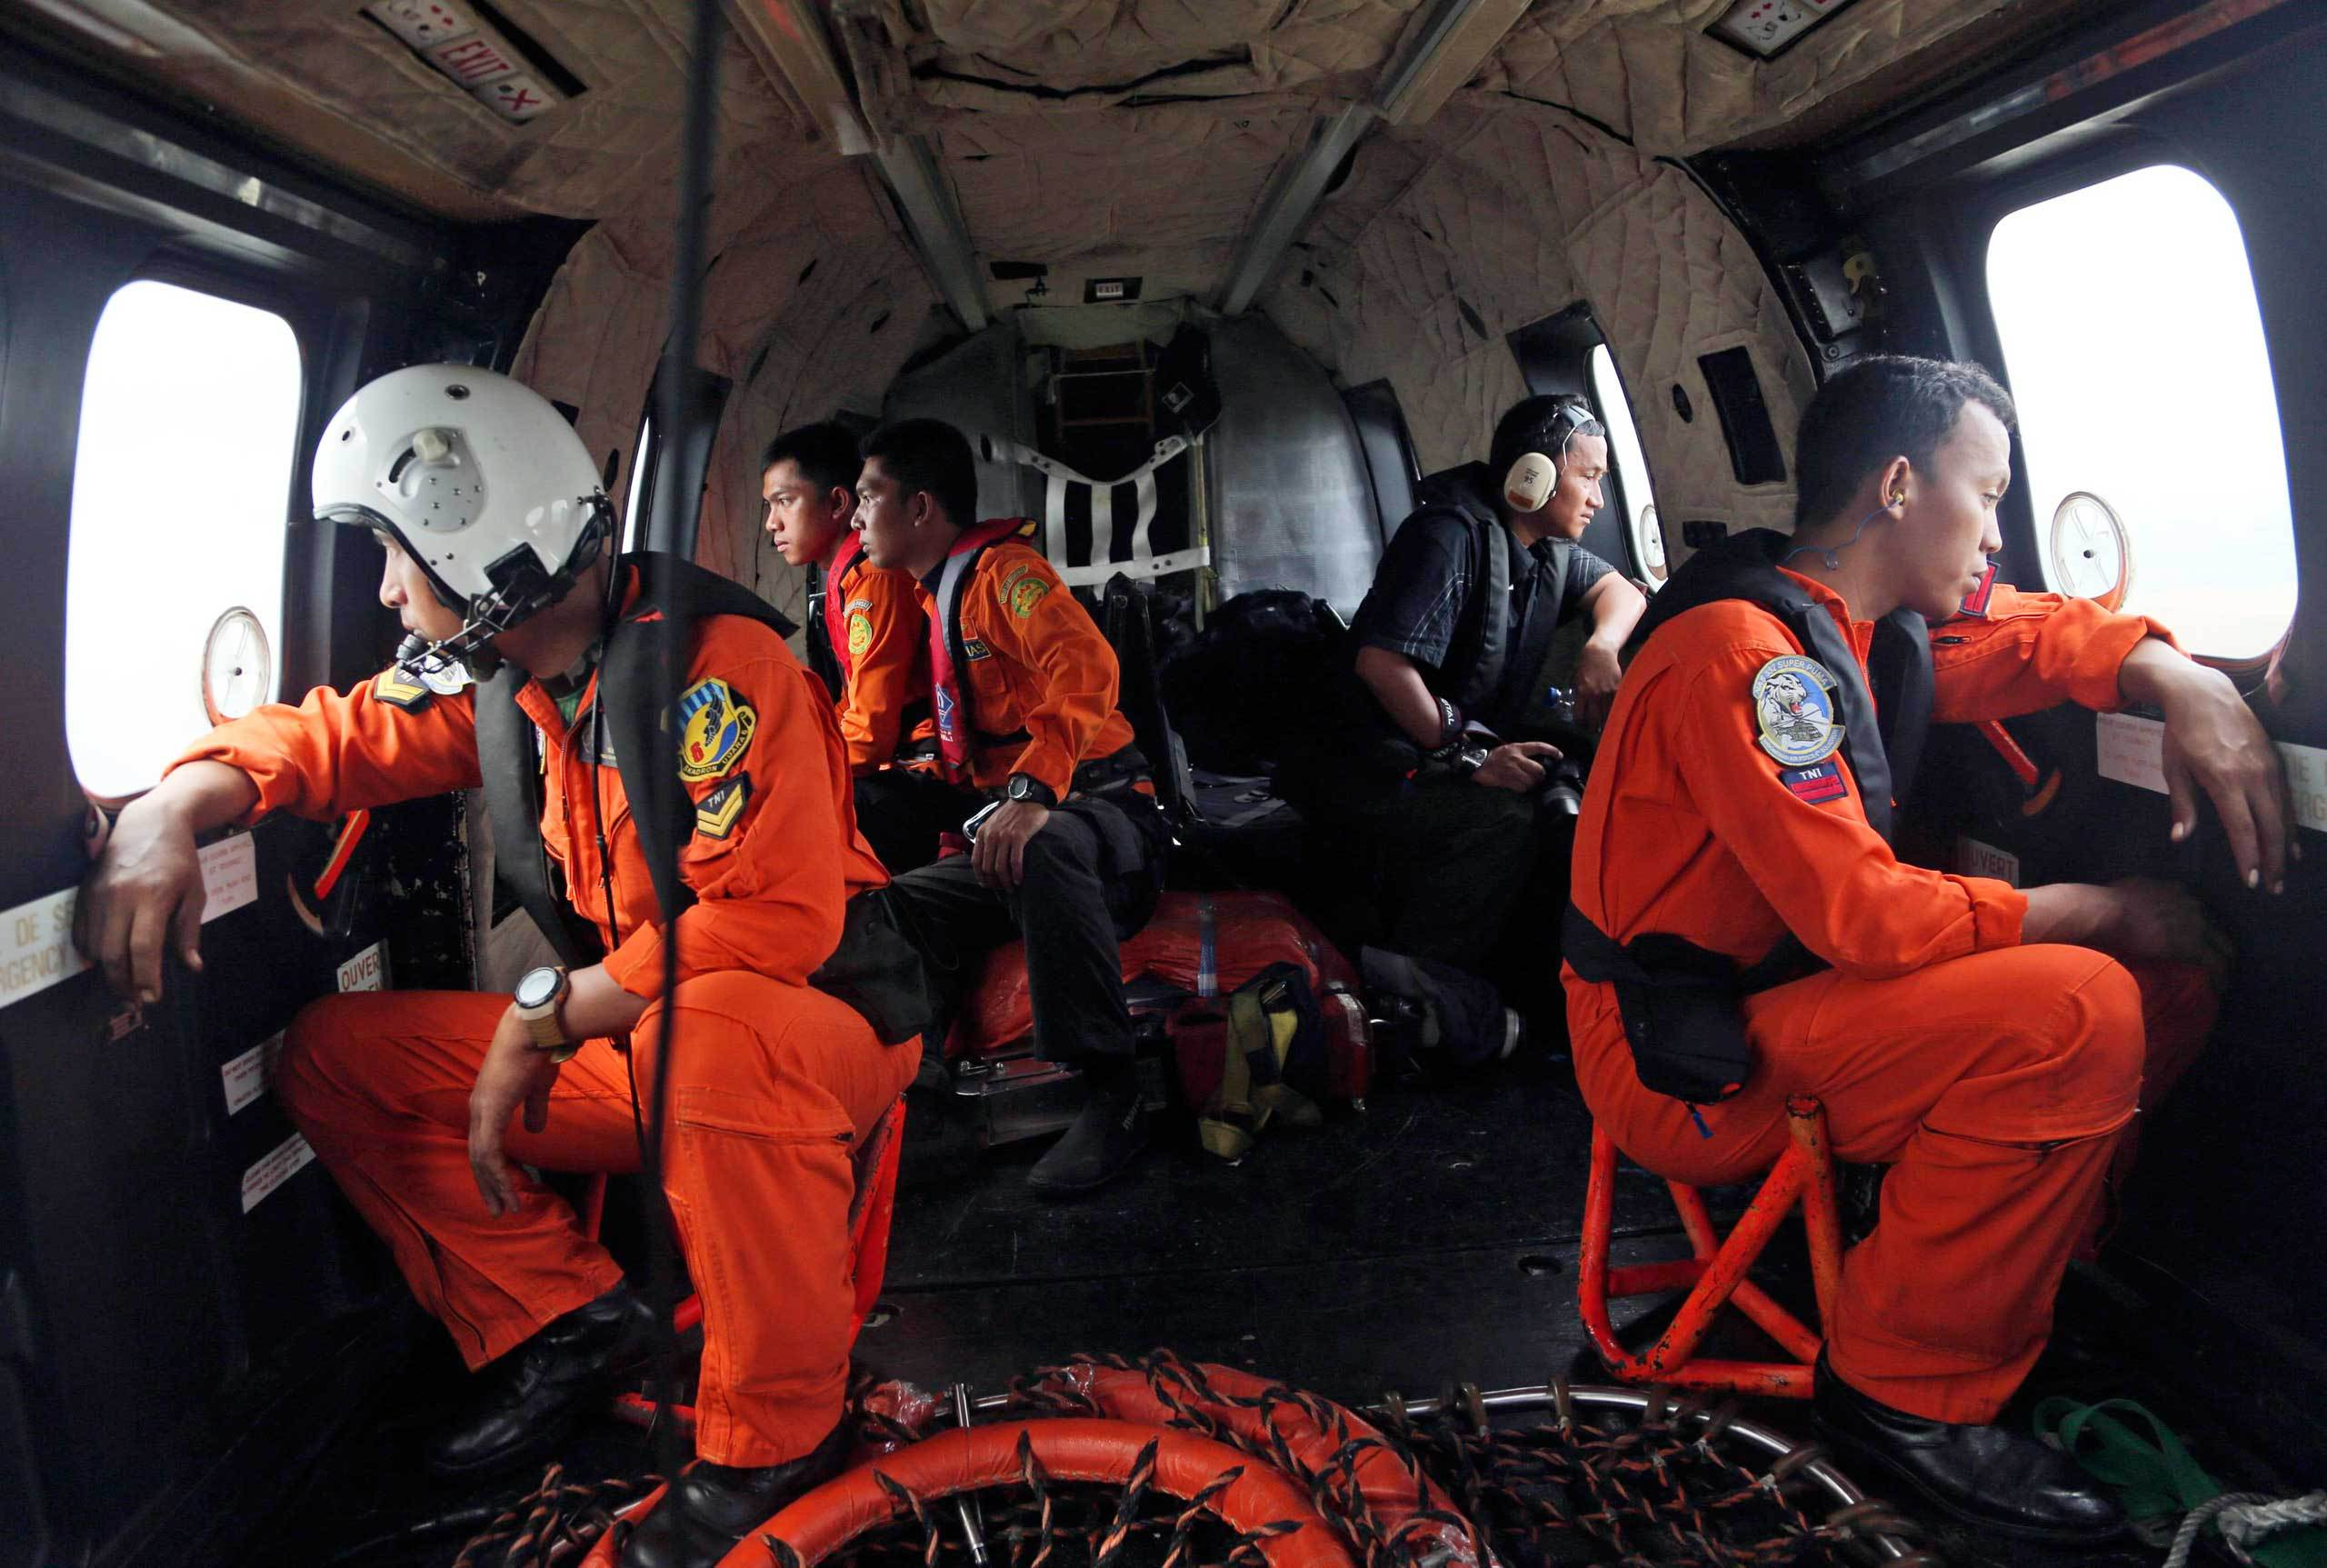 Crewmembers of an Indonesian Air Force NAS 332 Super Puma helicopter look out of the windows during a search operation for the victims and wreckage of AirAsia flight QZ 8501 over the Java Sea